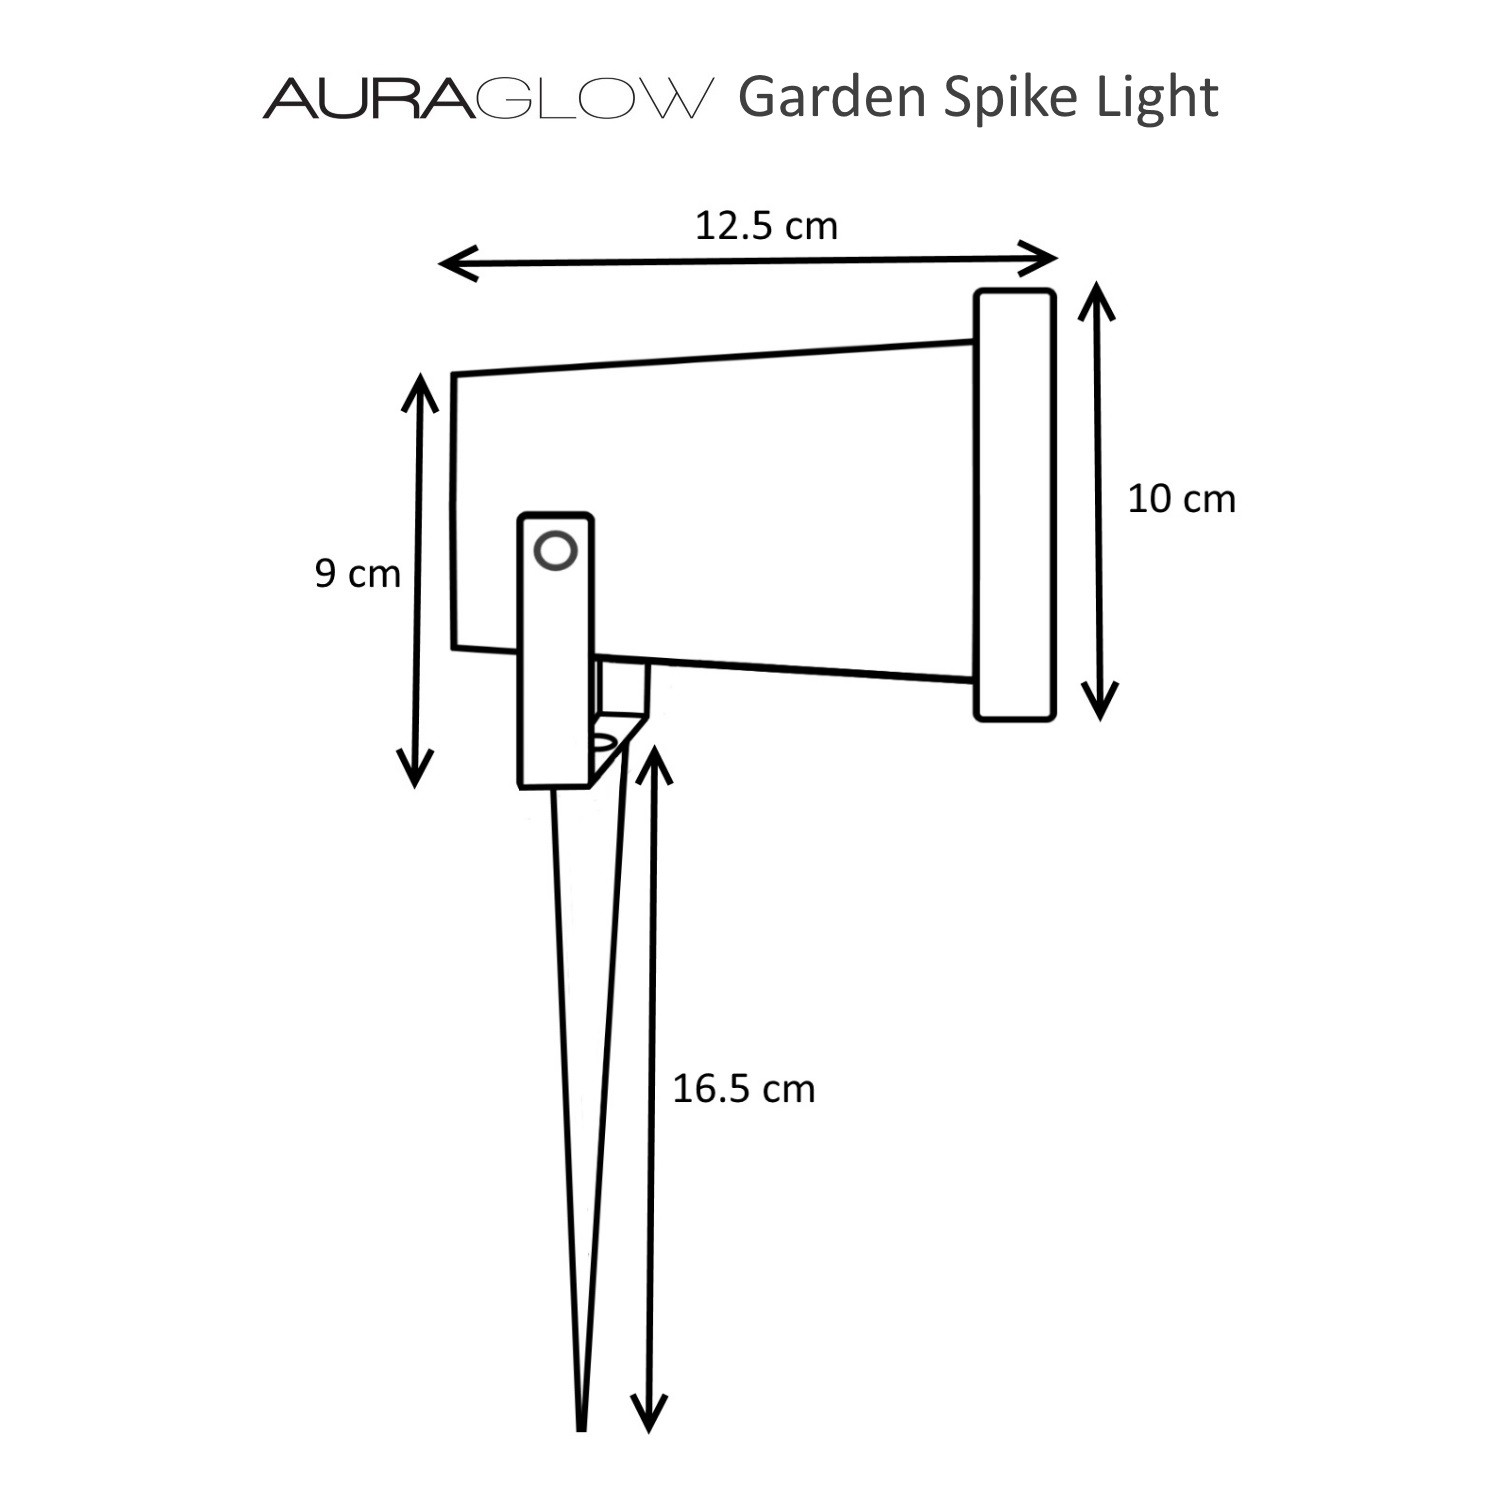 Auraglow Deep Recessed Gu10 Holder Ip54 Garden Spike Light